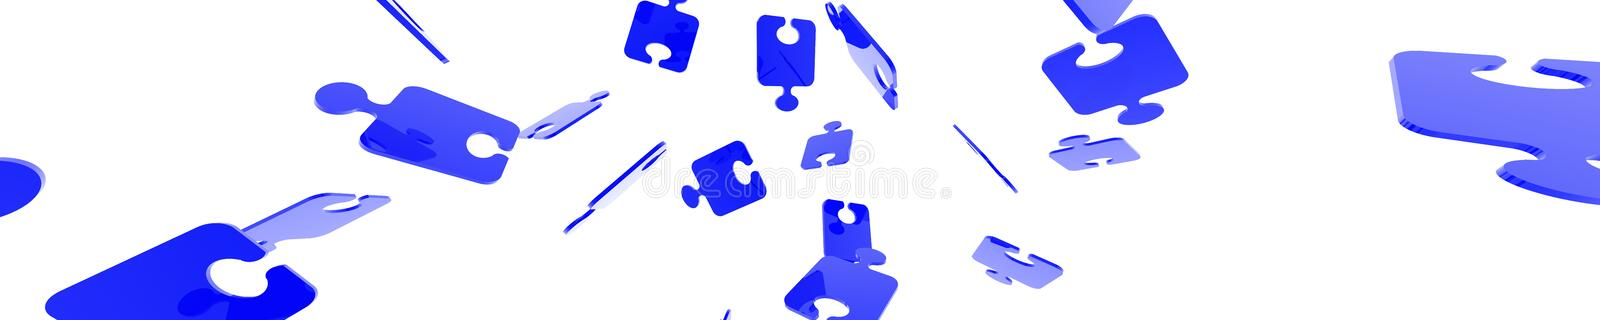 Puzzle Banner Royalty Free Stock Photography